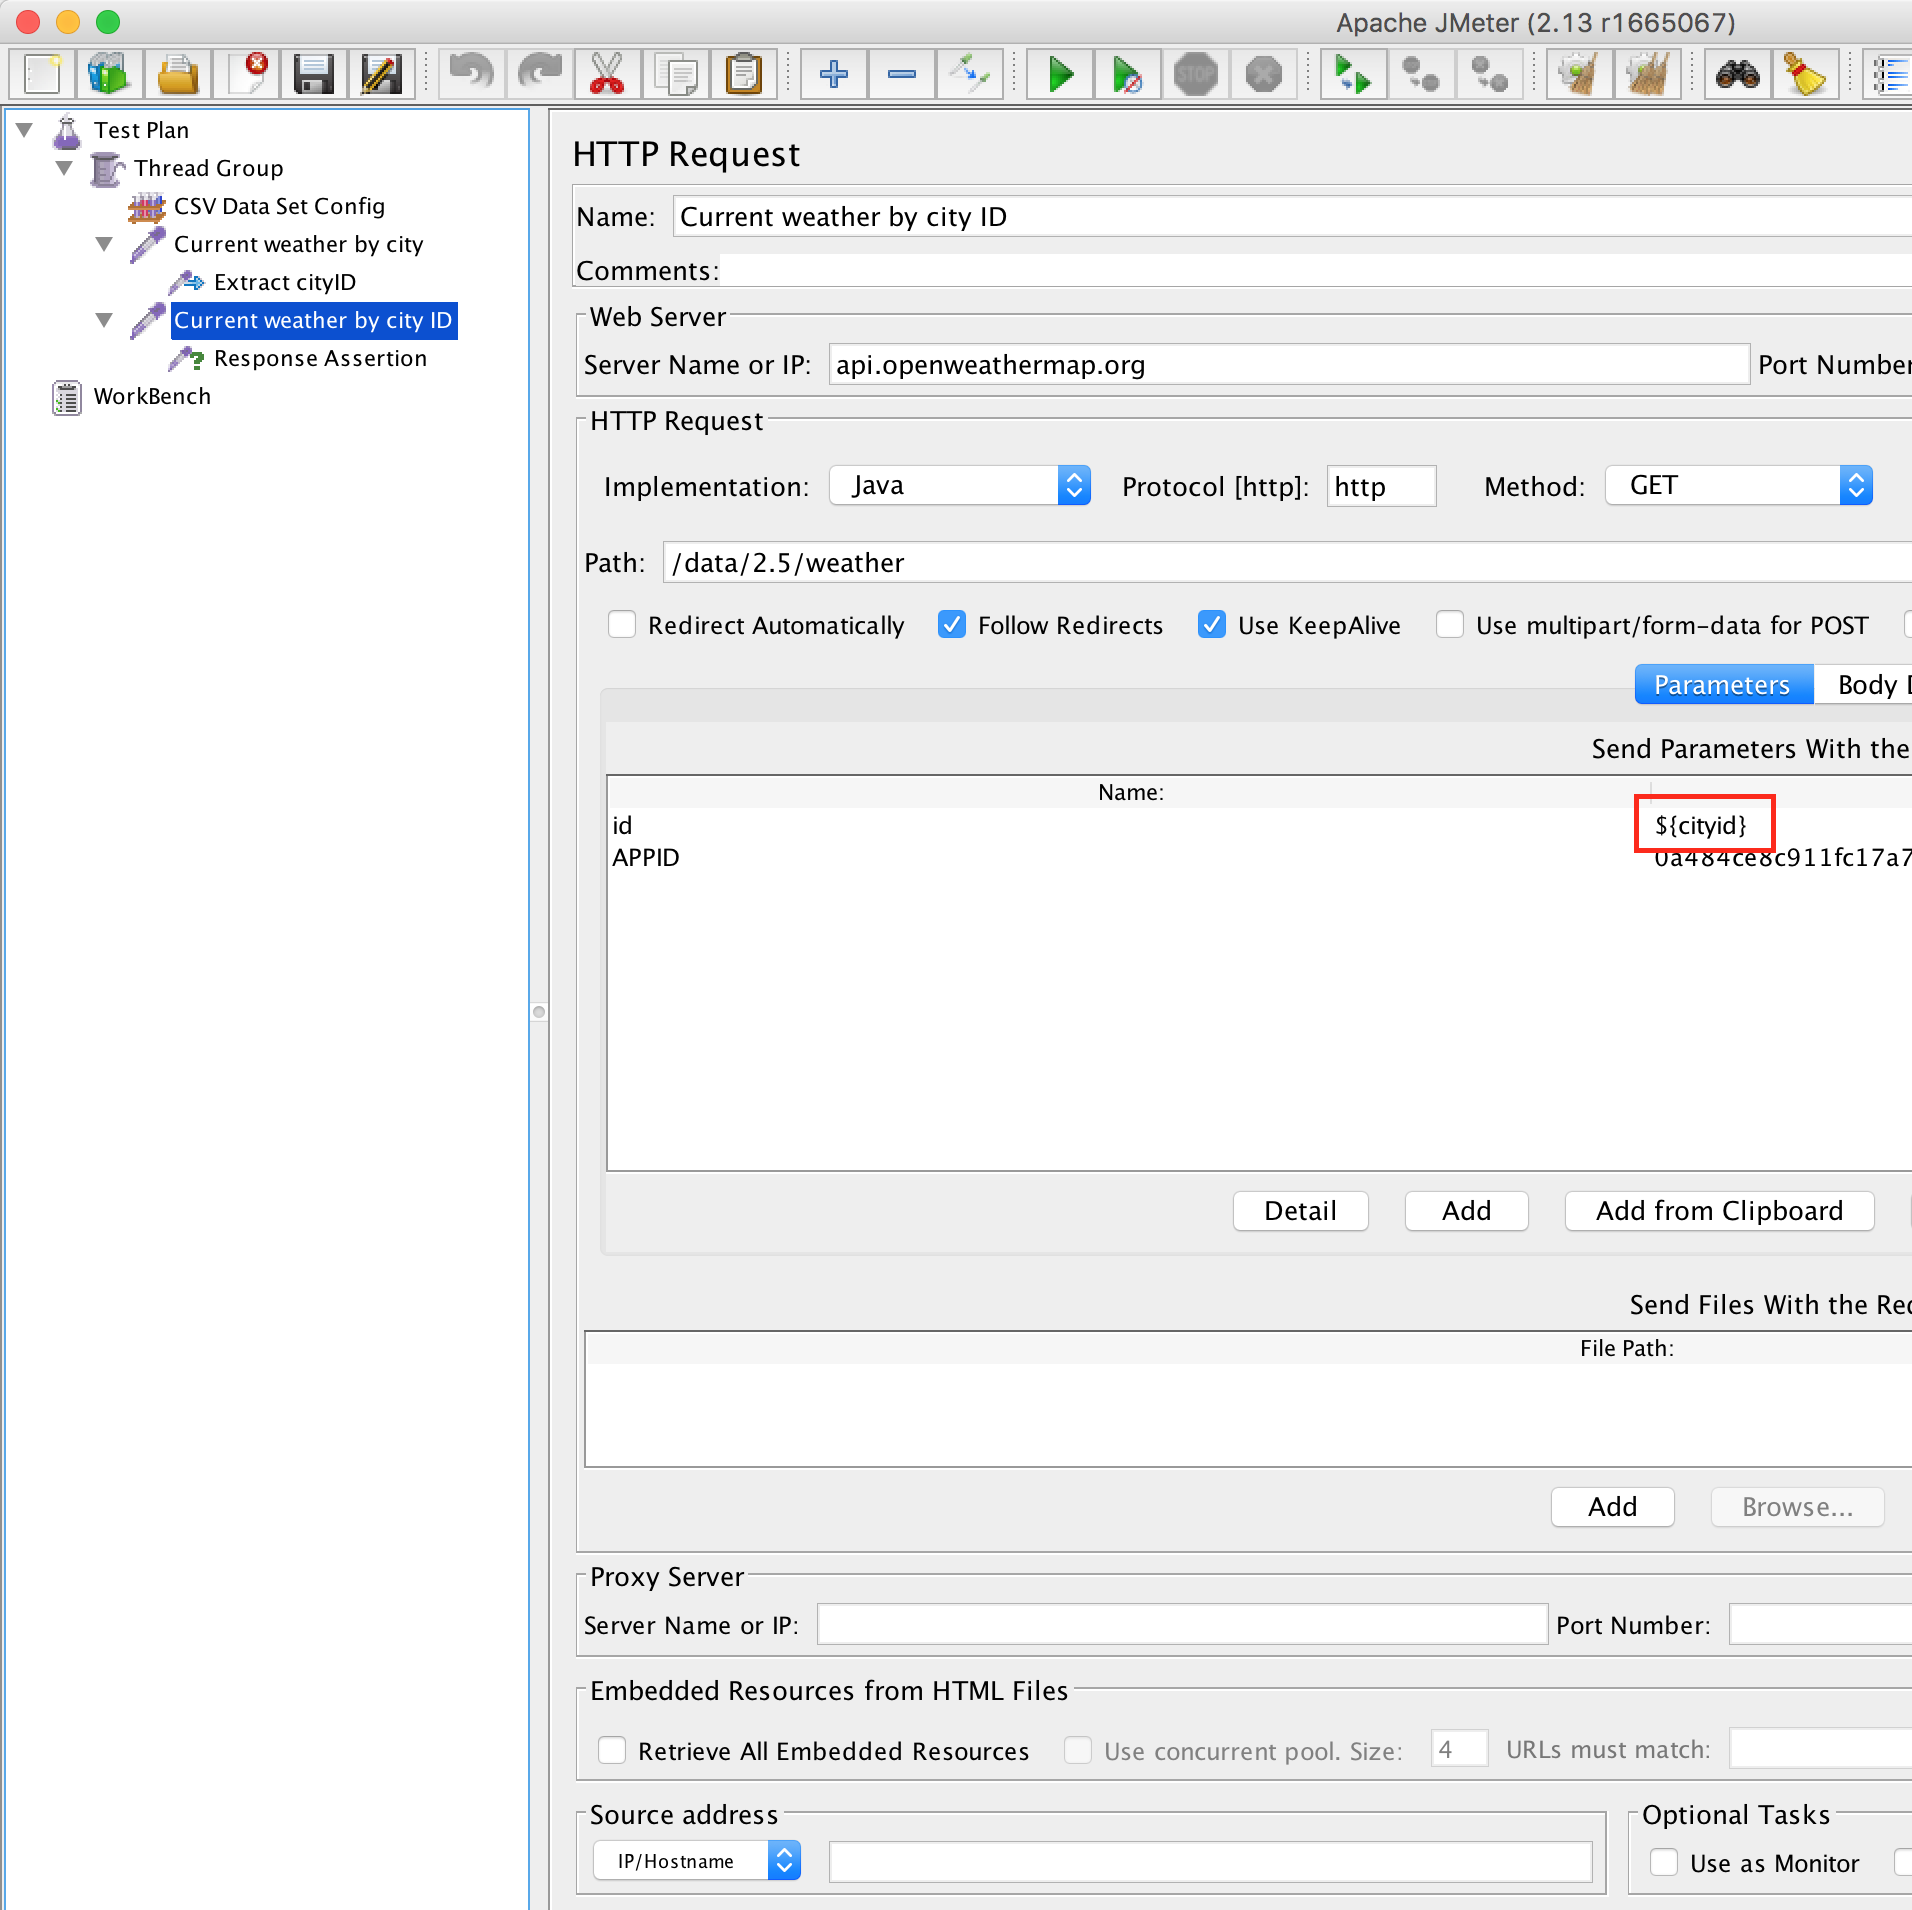 Screenshot example of variable used in subsequent requests